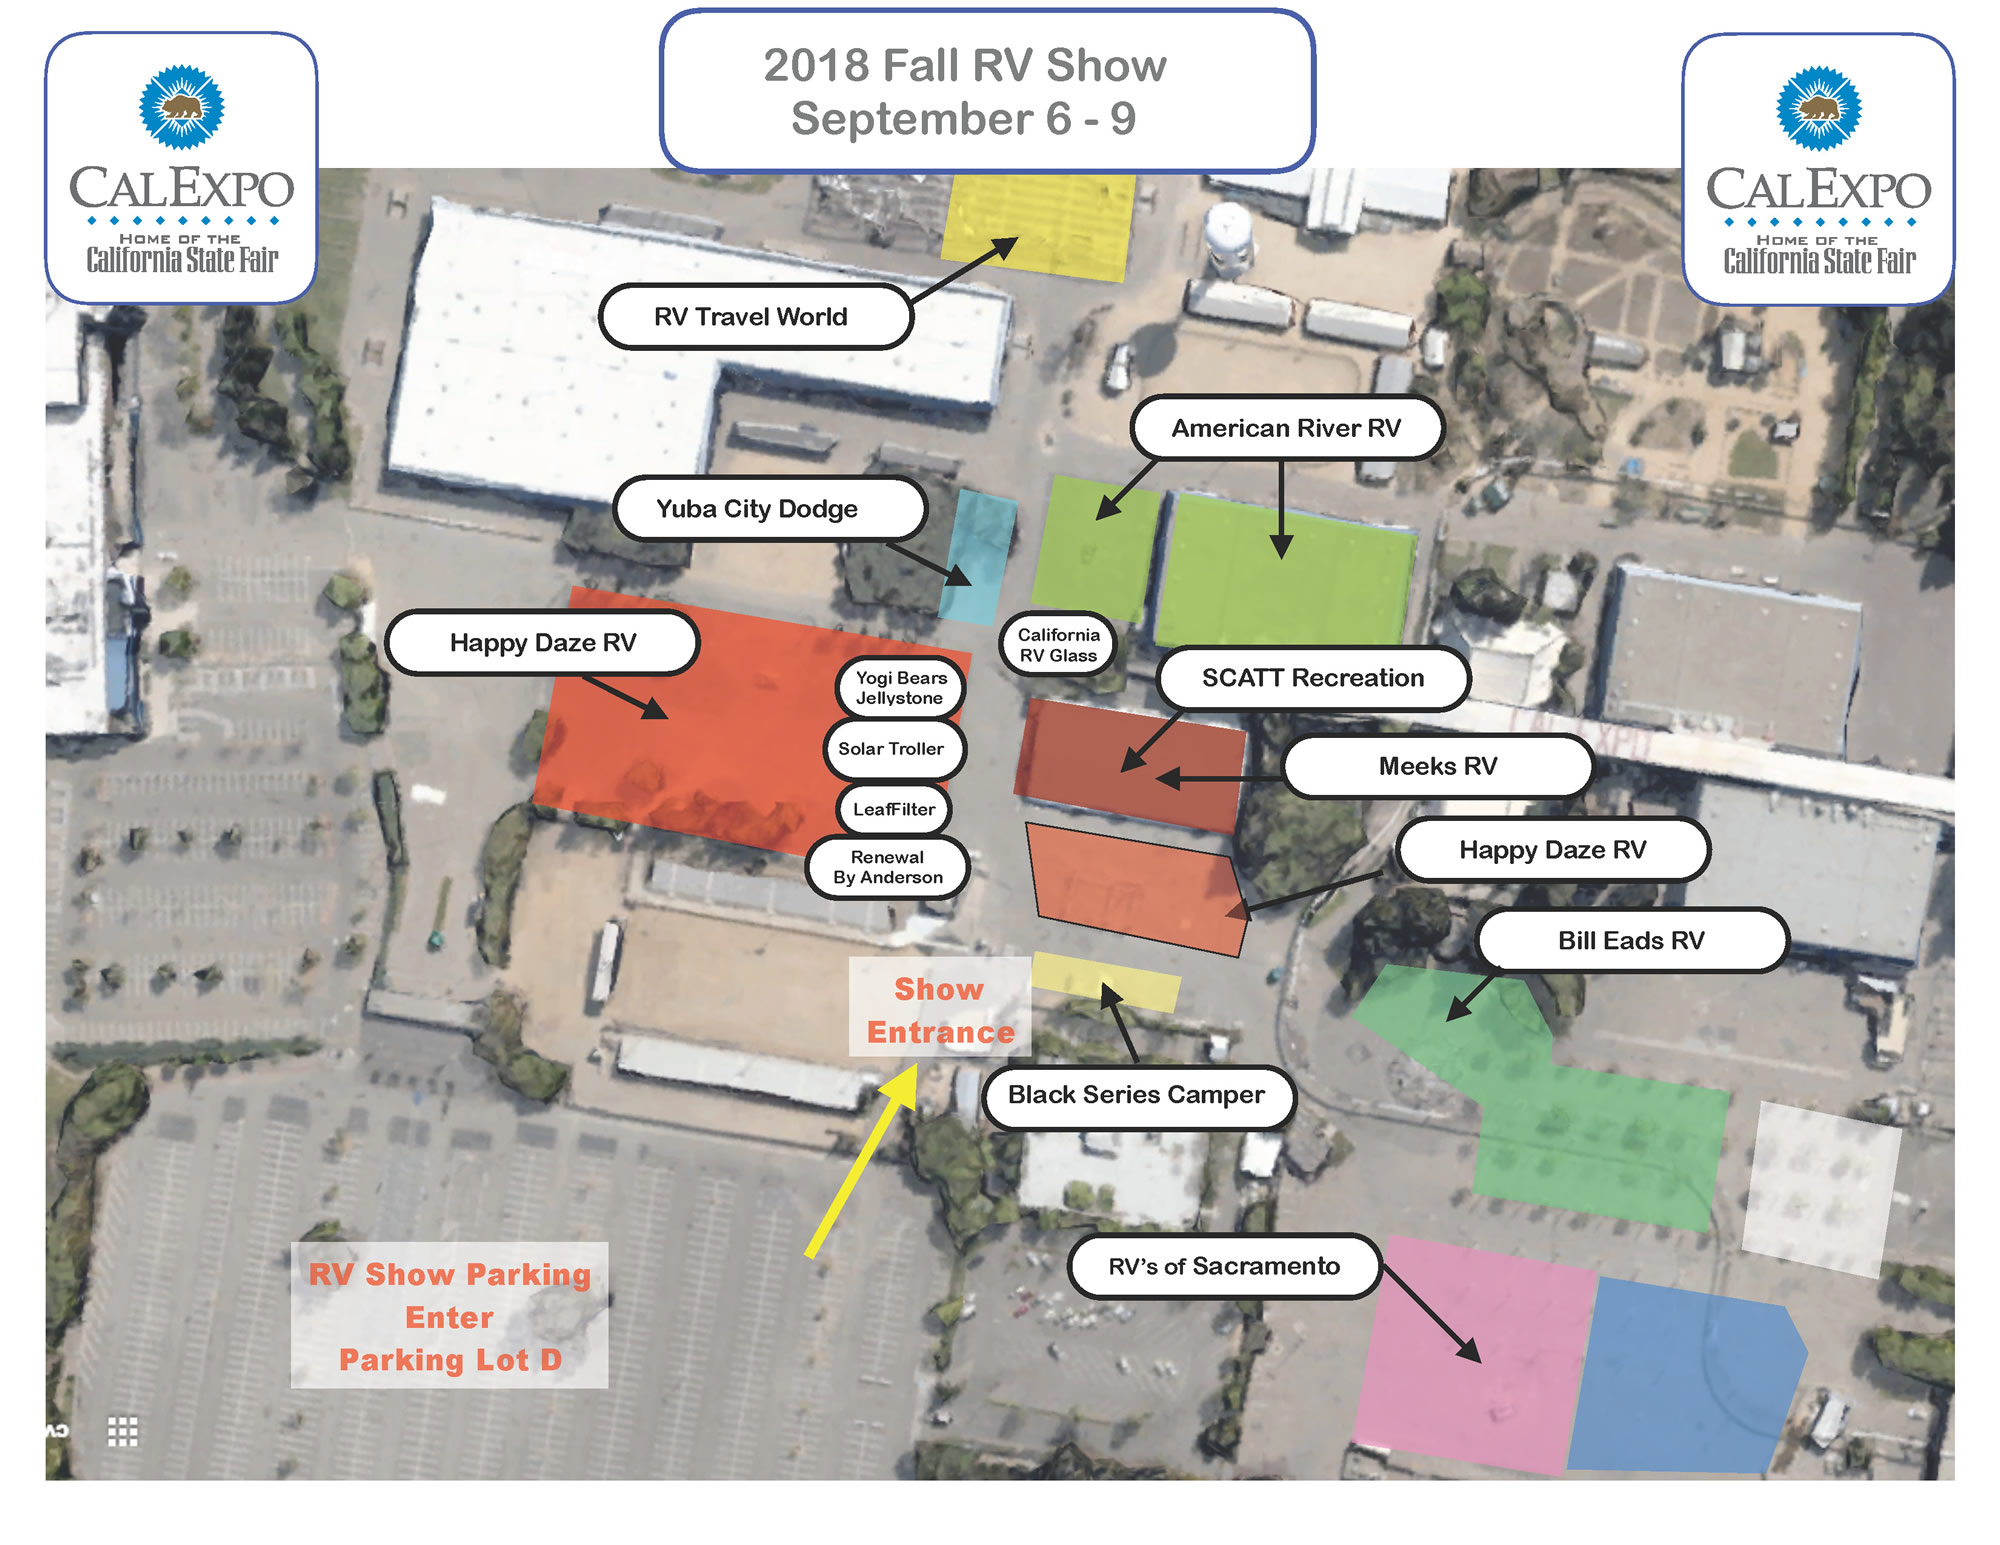 RV Show Fall 2018 Layout